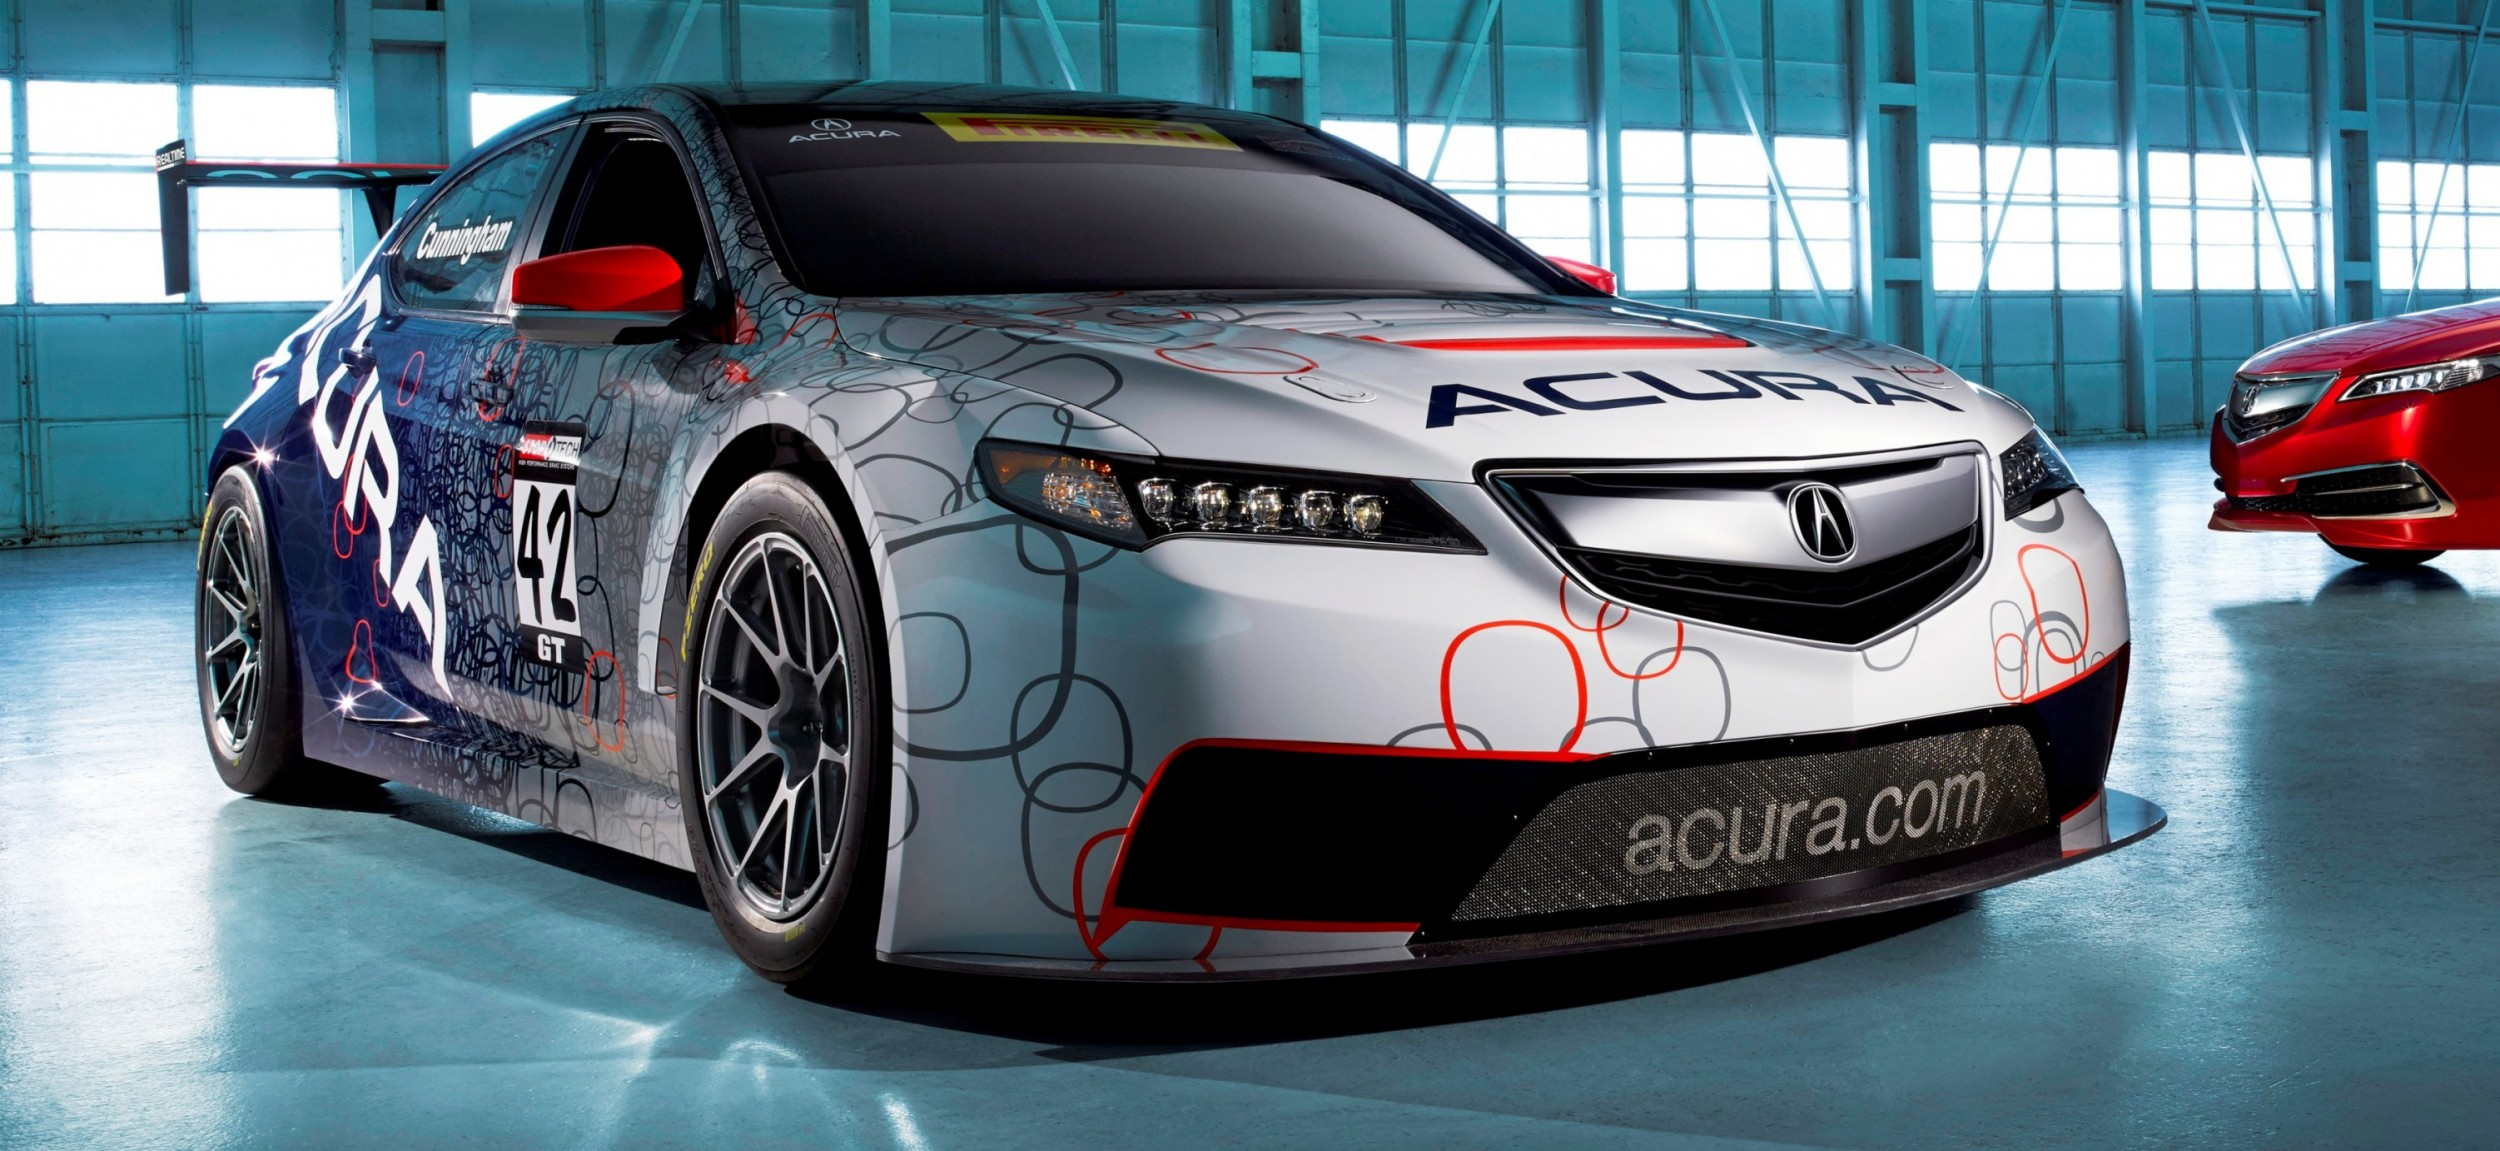 acura tlx gt racecar boosts 2015 tlx launch with 500hp twin turbo sh awd. Black Bedroom Furniture Sets. Home Design Ideas